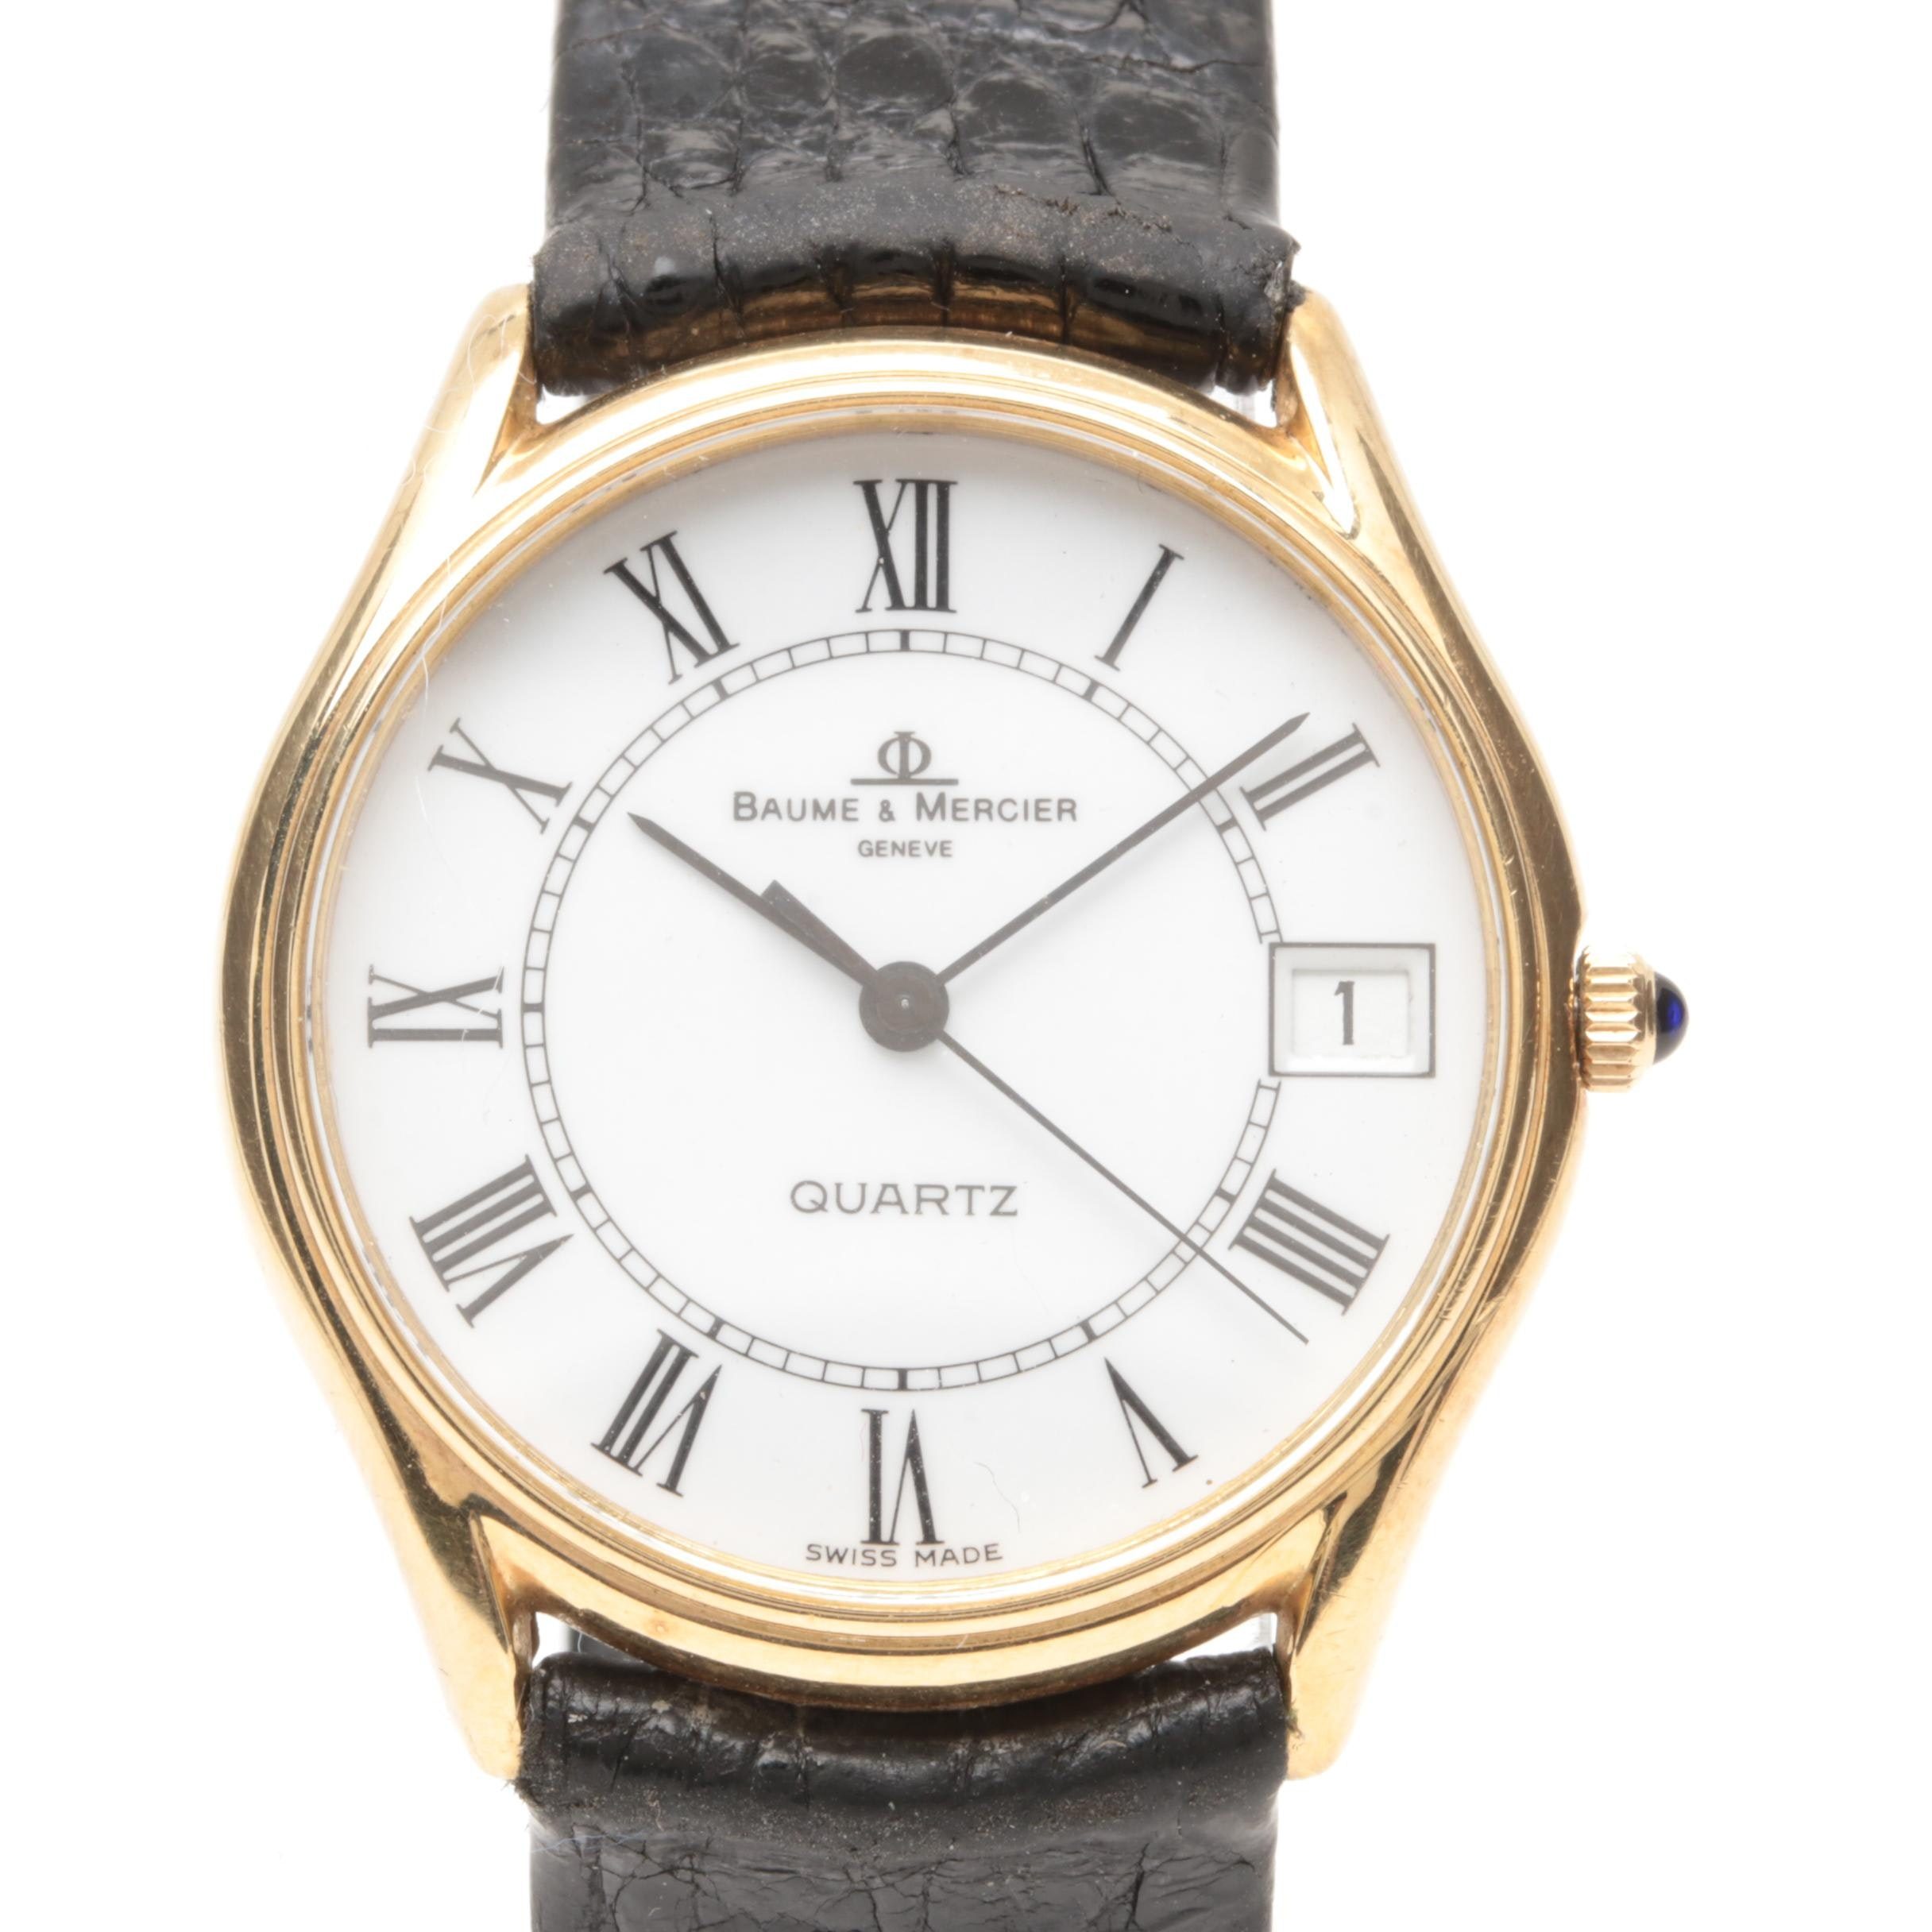 Baume & Mercier 14K Yellow Gold and Leather Wristwatch